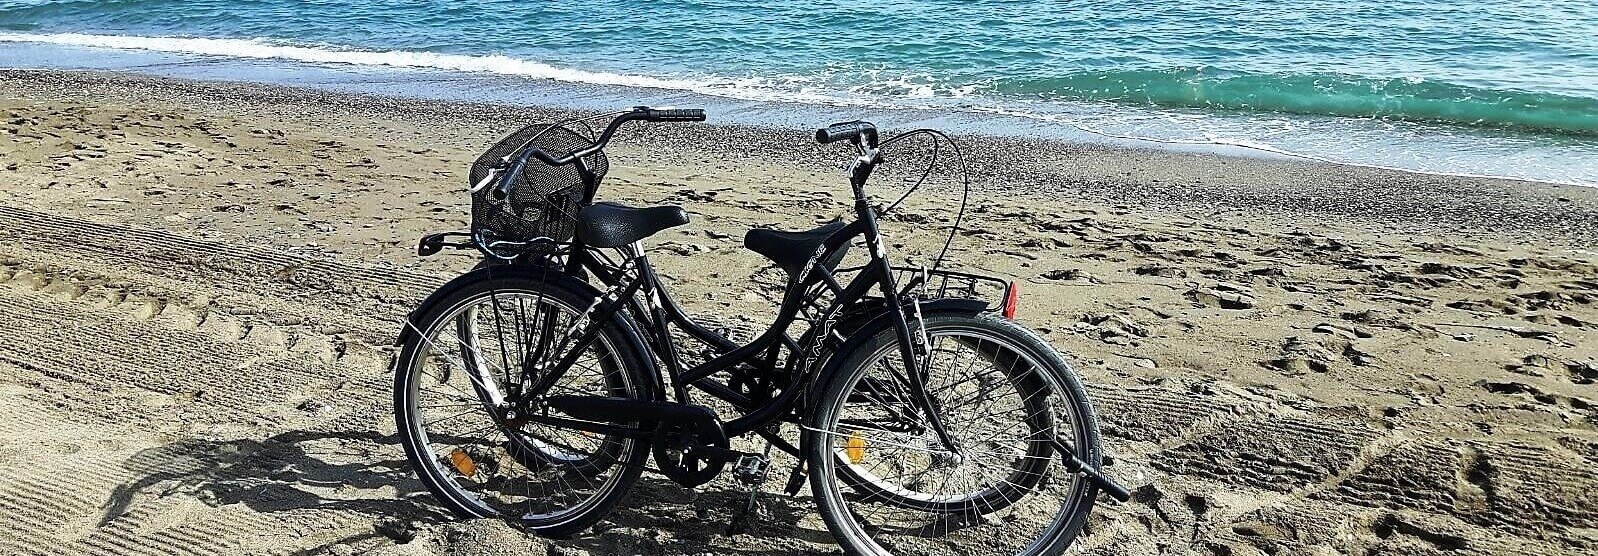 Bike rental picture on Màlaga beach